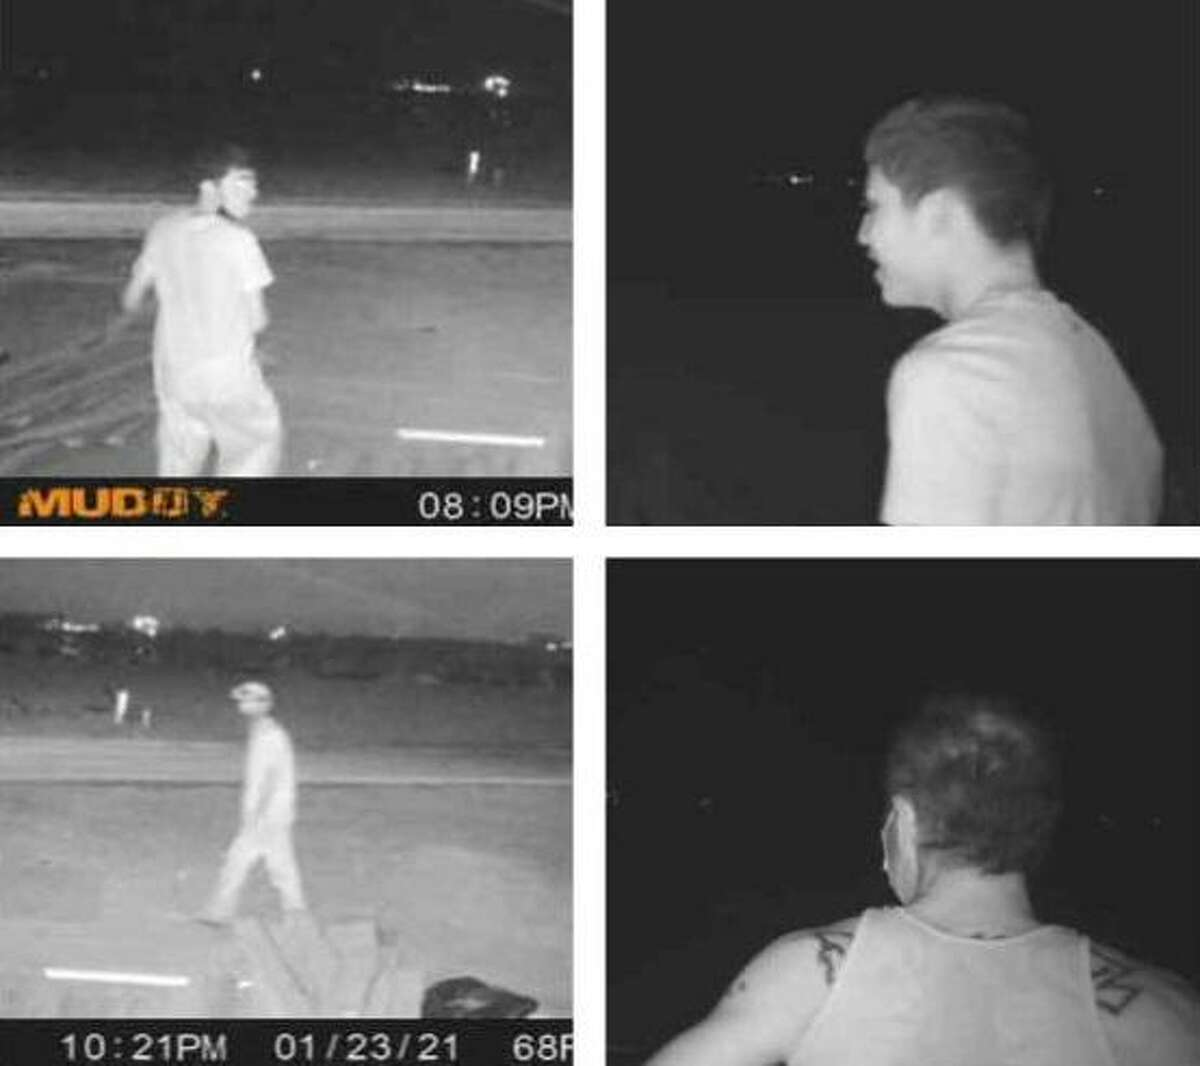 Laredo police said they need to identify these individuals in connection to a theft reported at a construction site.